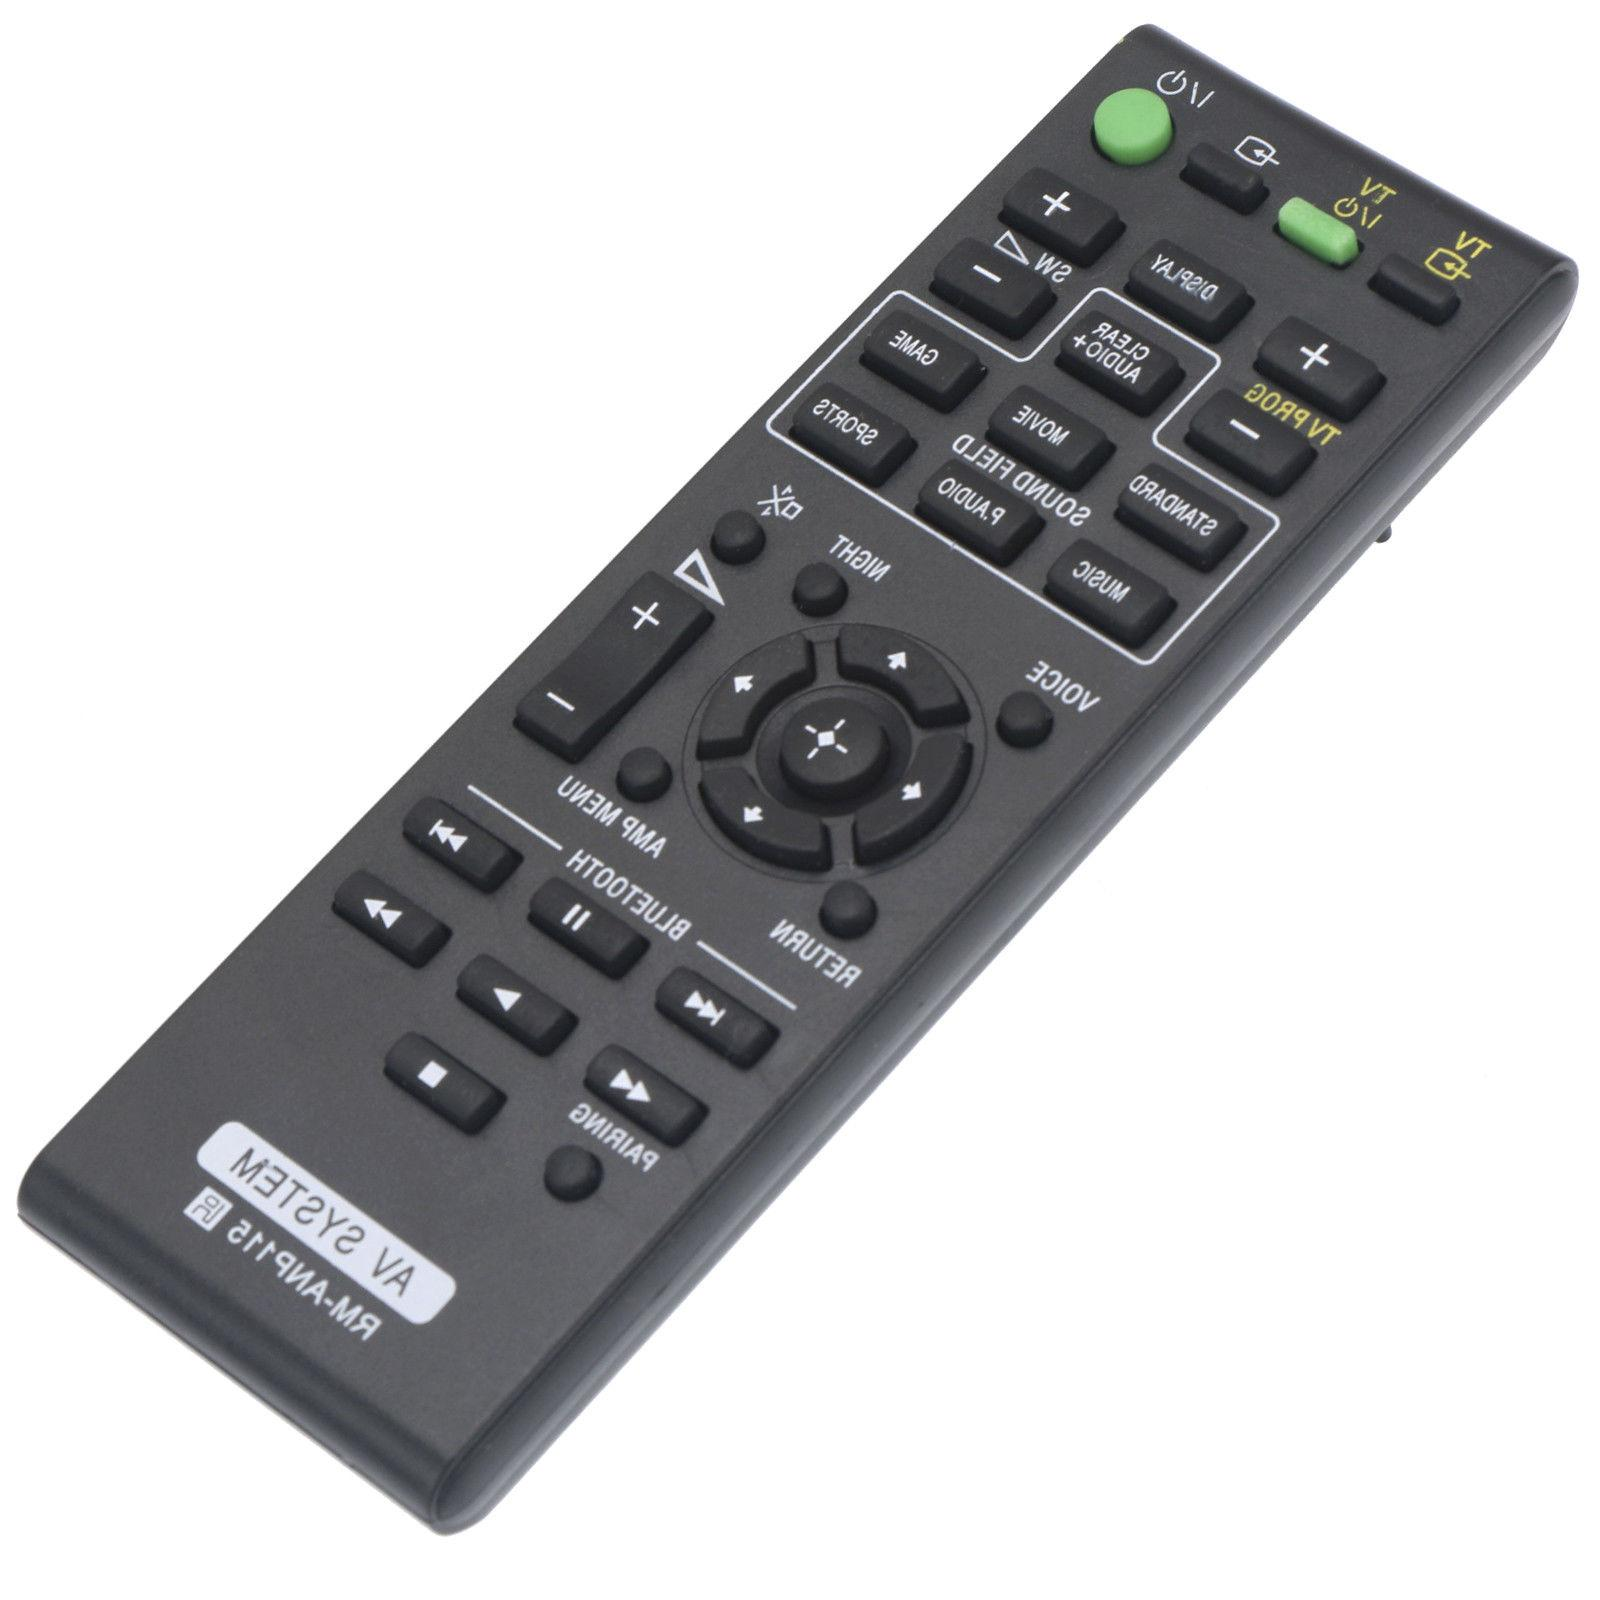 New RM-ANP115 Replace Remote for Sony Sound Bar HT-CT370 HT-